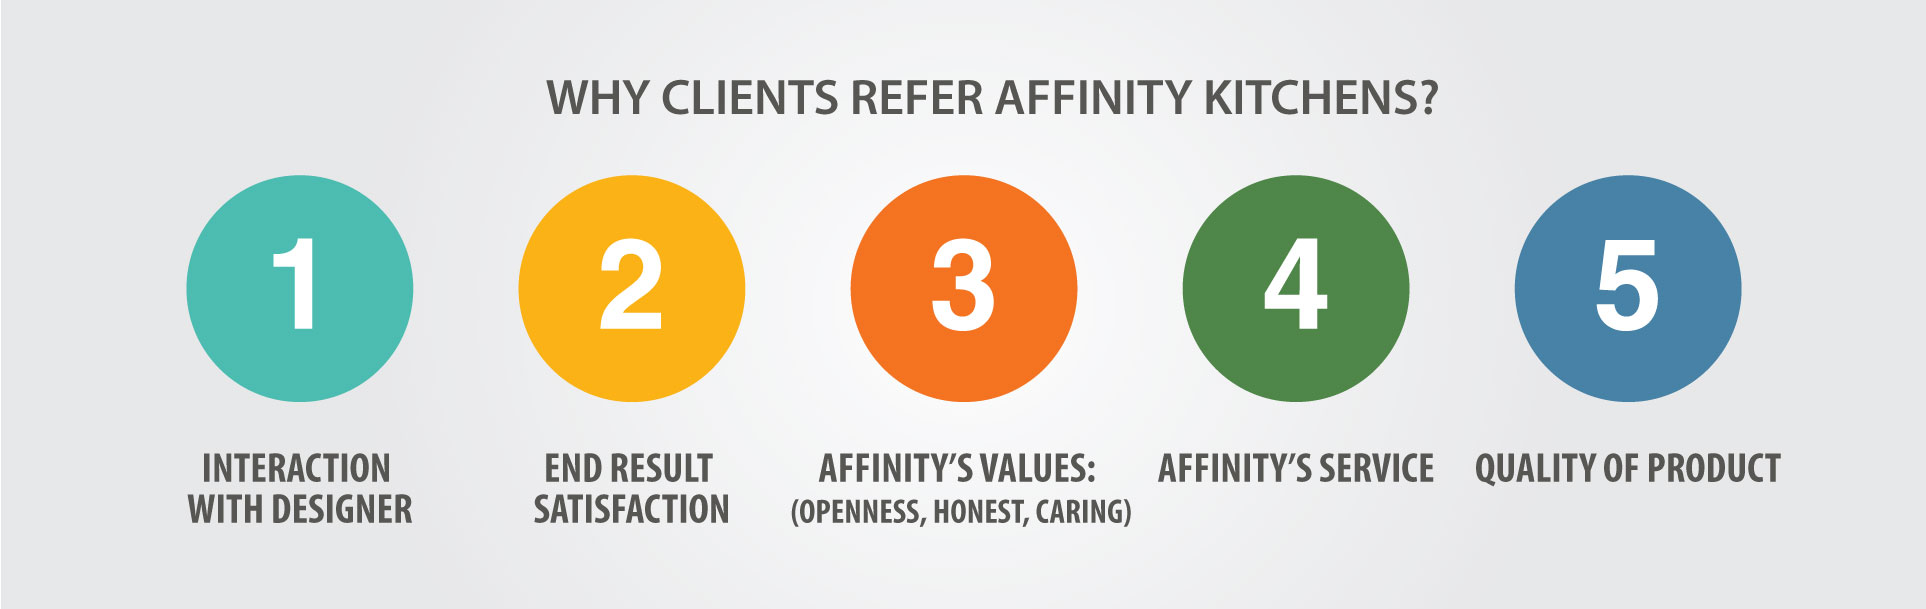 affinity_kitchens_whyrefer